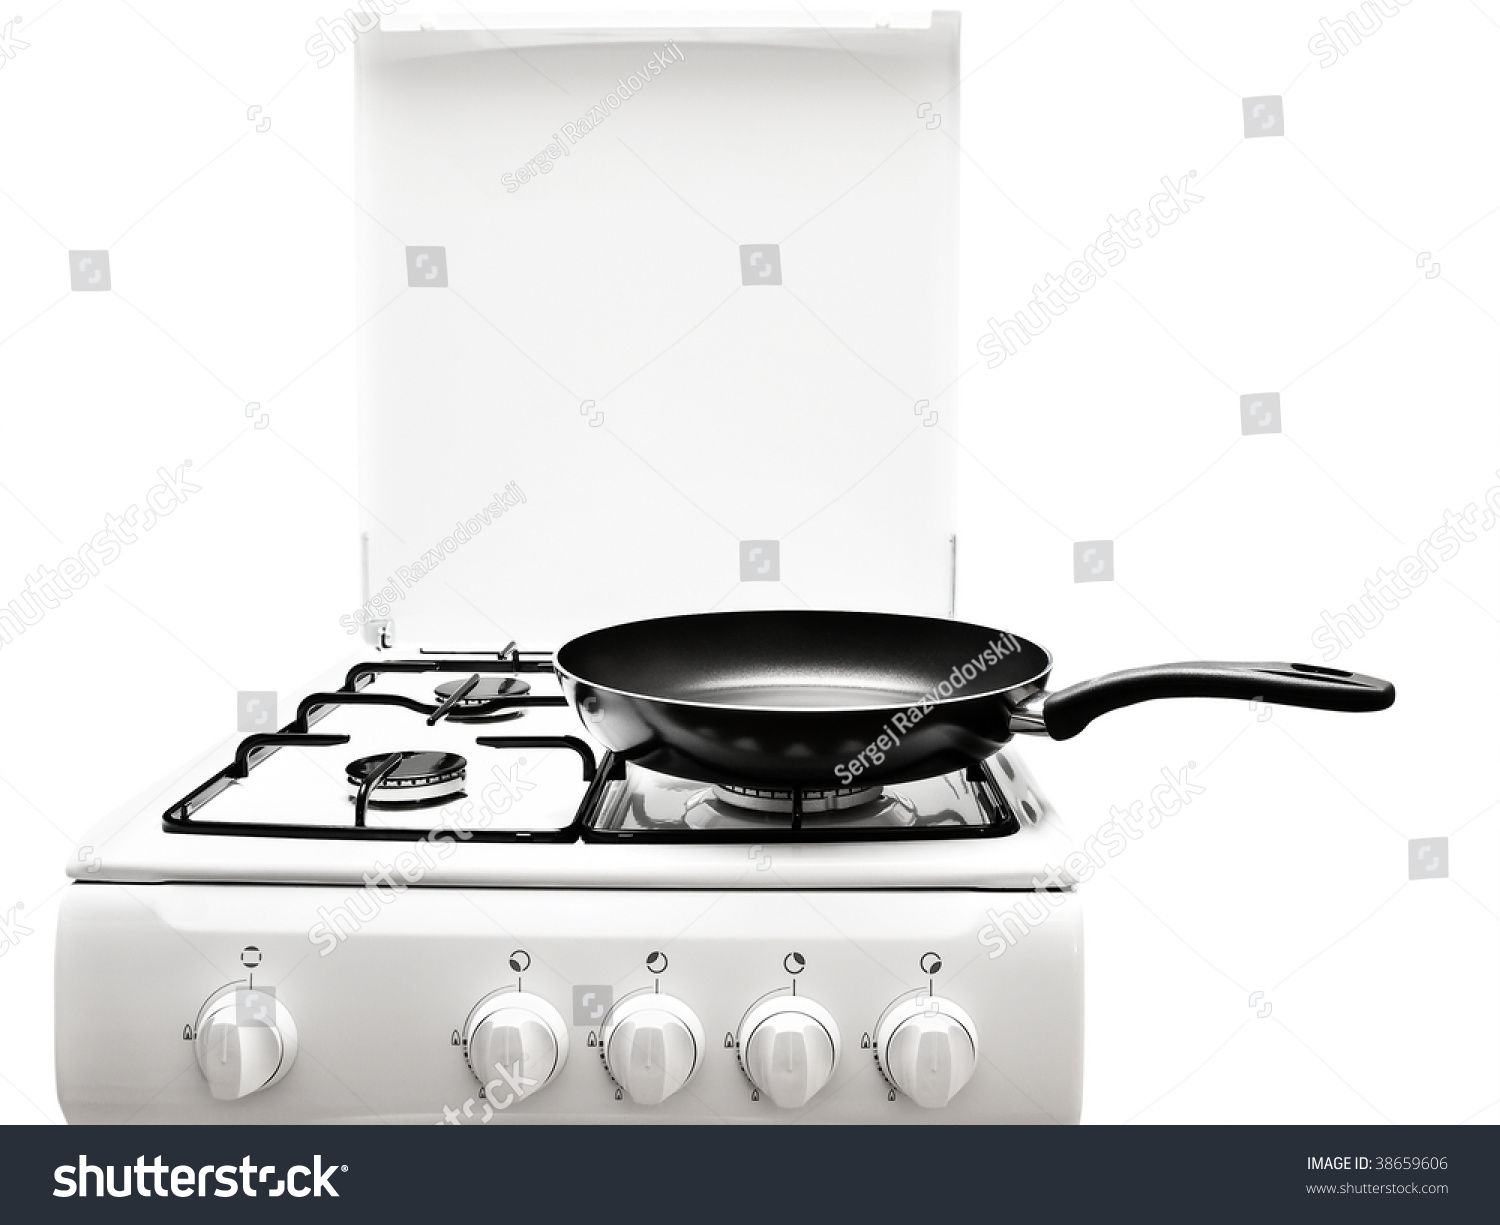 Frying Pan White Gas Stove Over Stock Photo 38659606 - Shutterstock